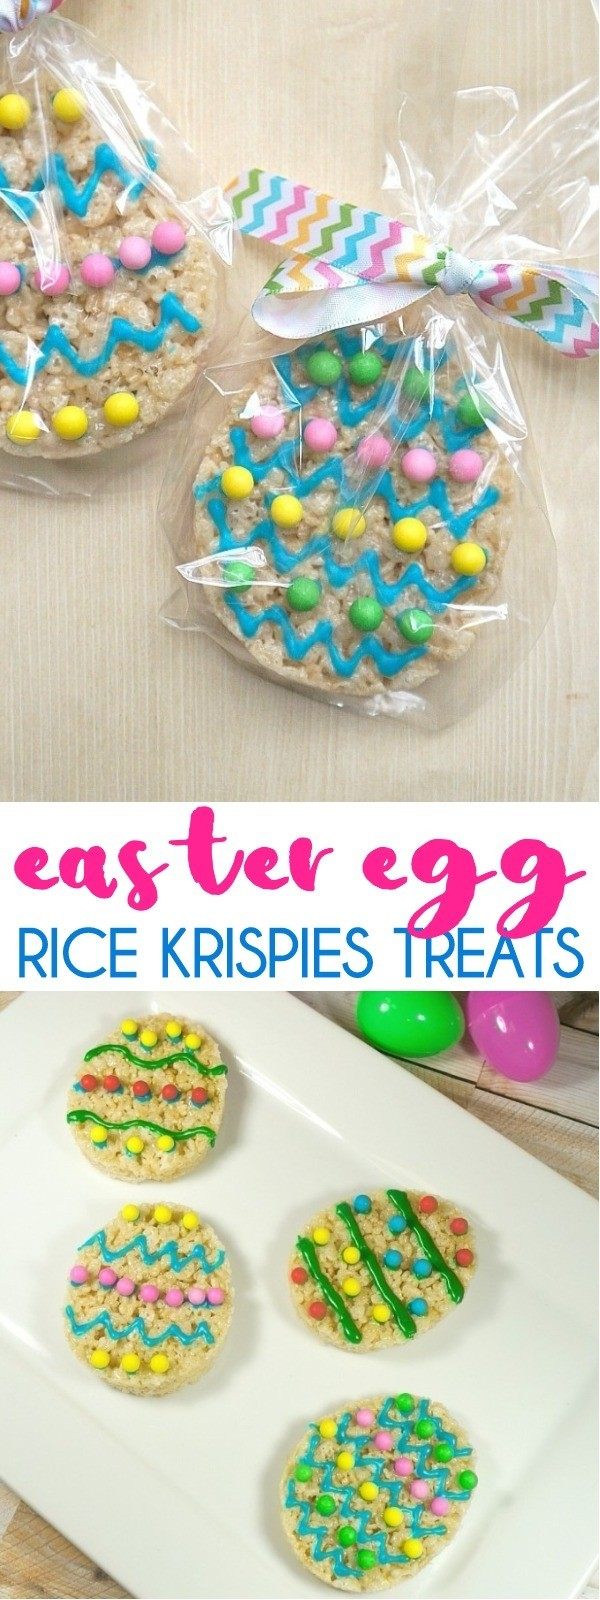 Easter Egg Rice Krispies Treats Recipe - What Fun Easter Party Favor Ideas!